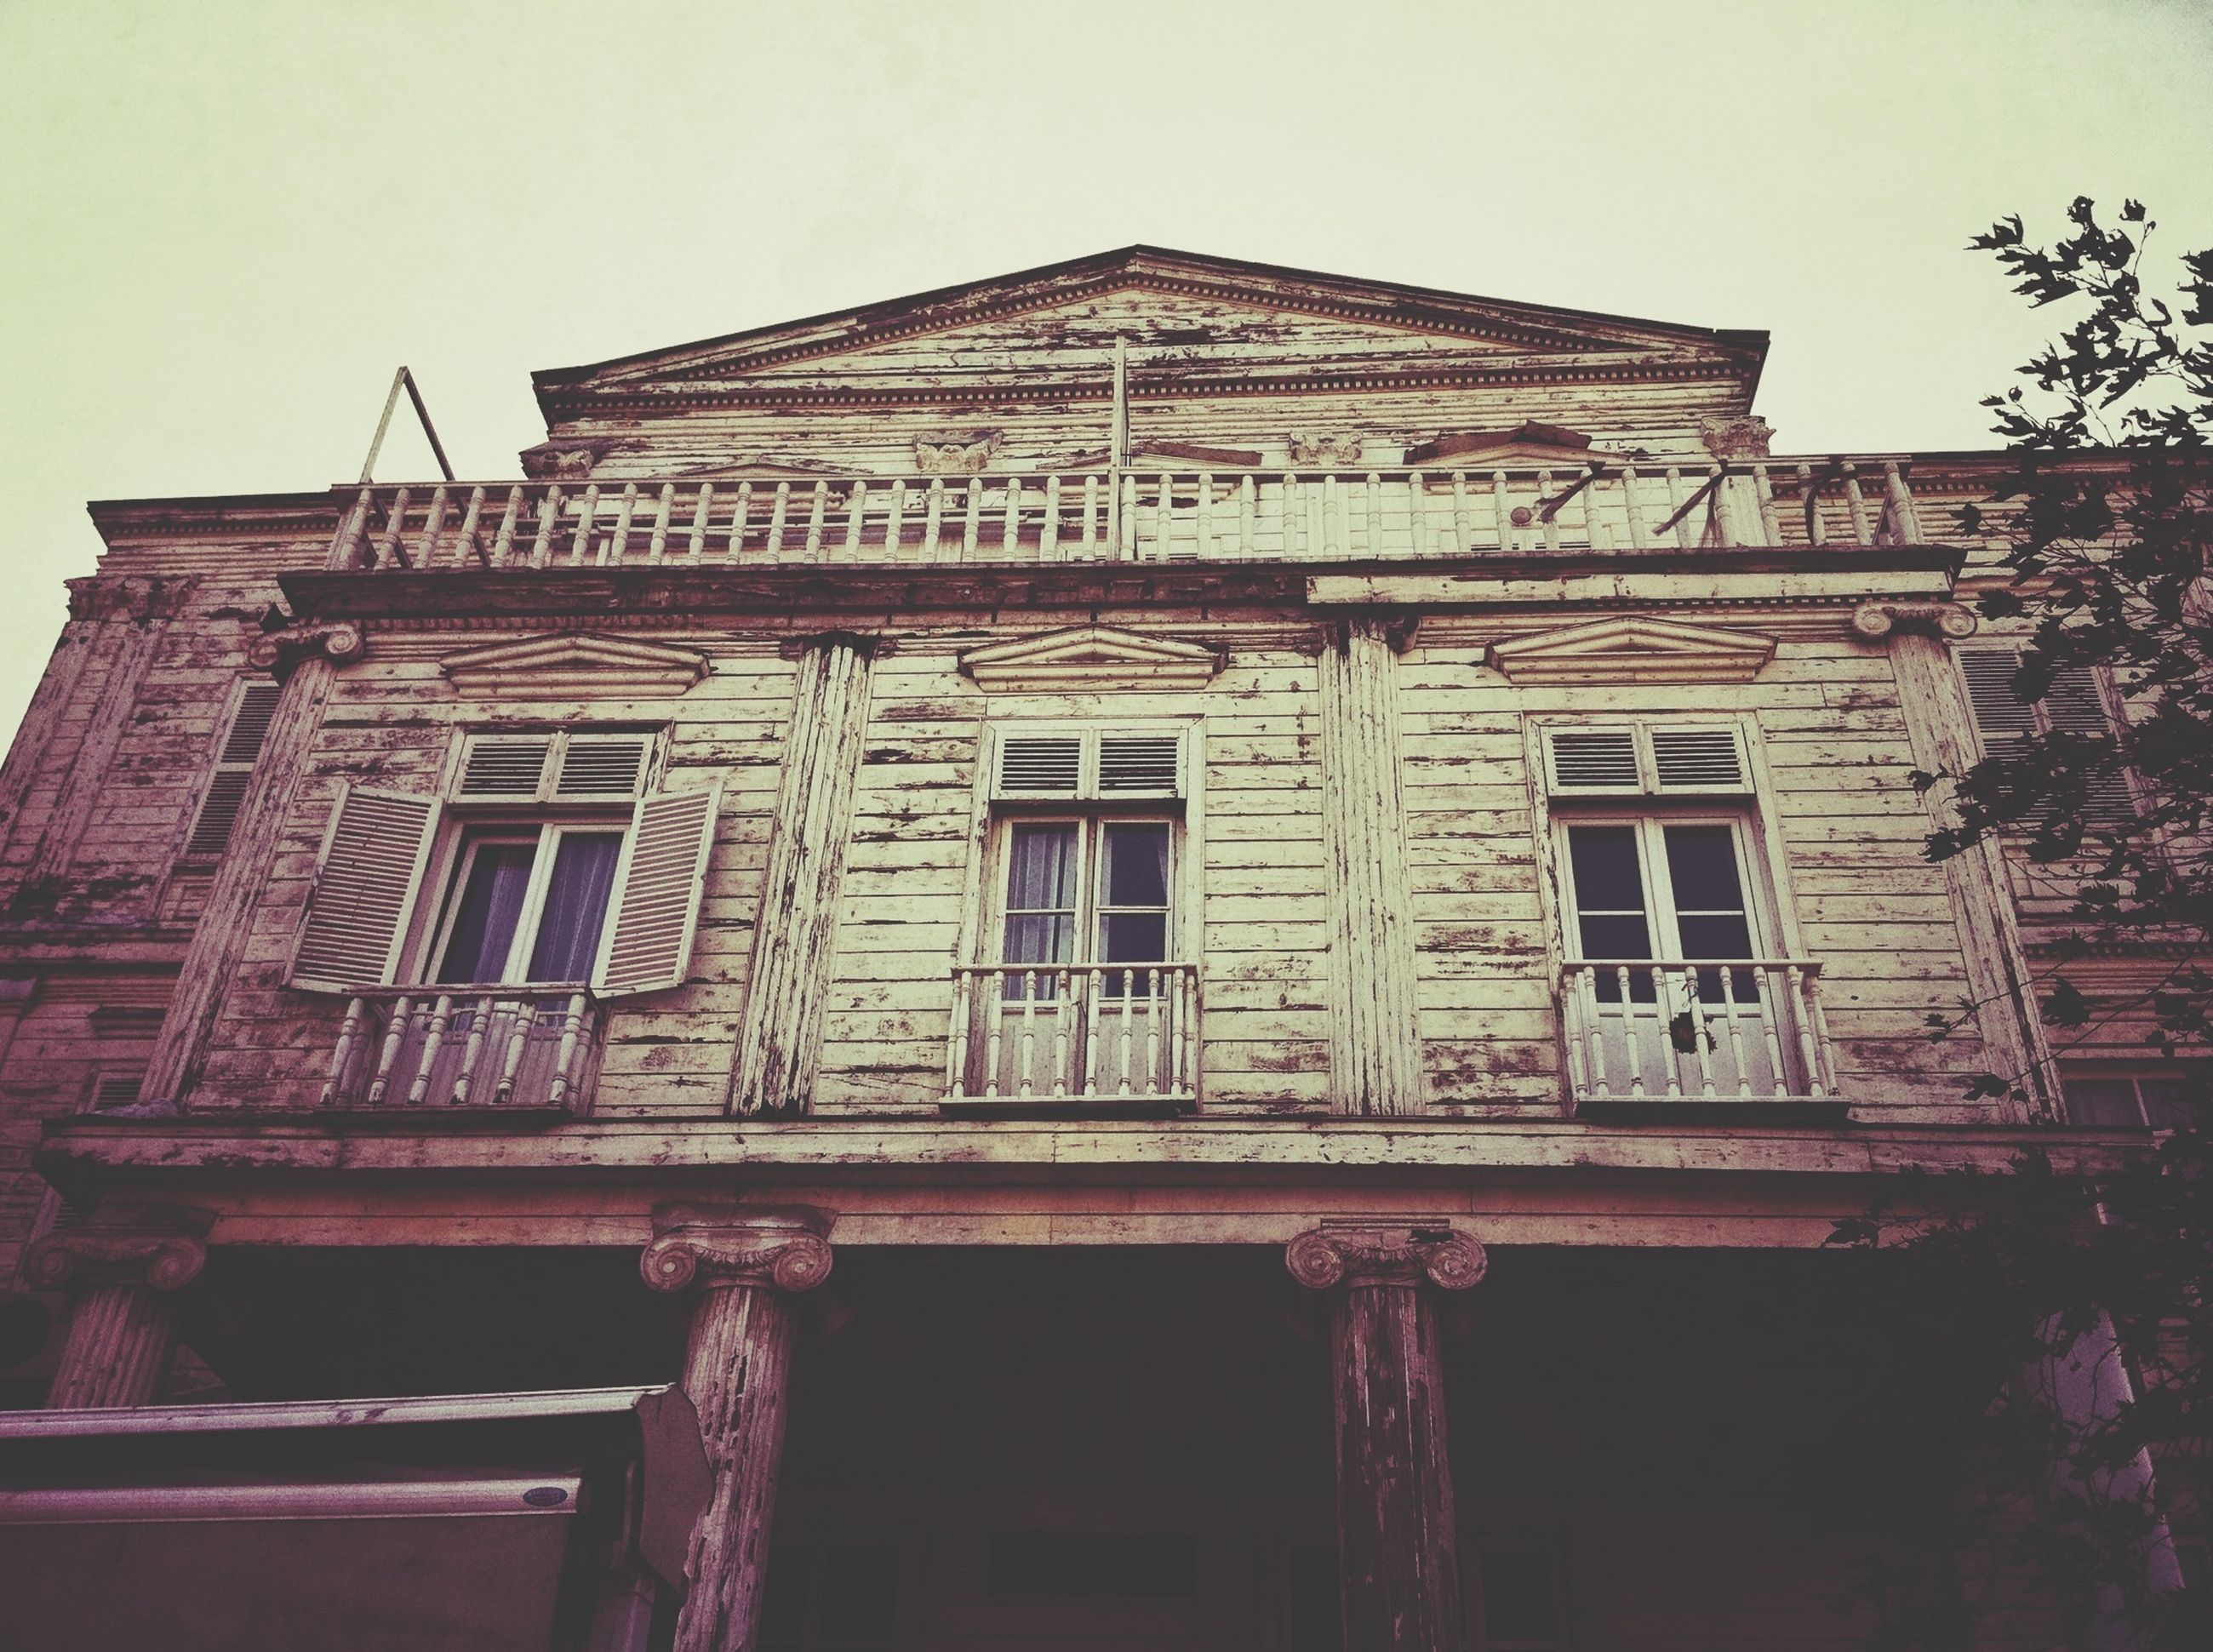 architecture, built structure, building exterior, low angle view, window, clear sky, old, building, facade, day, outdoors, no people, residential building, residential structure, sky, house, history, exterior, door, balcony